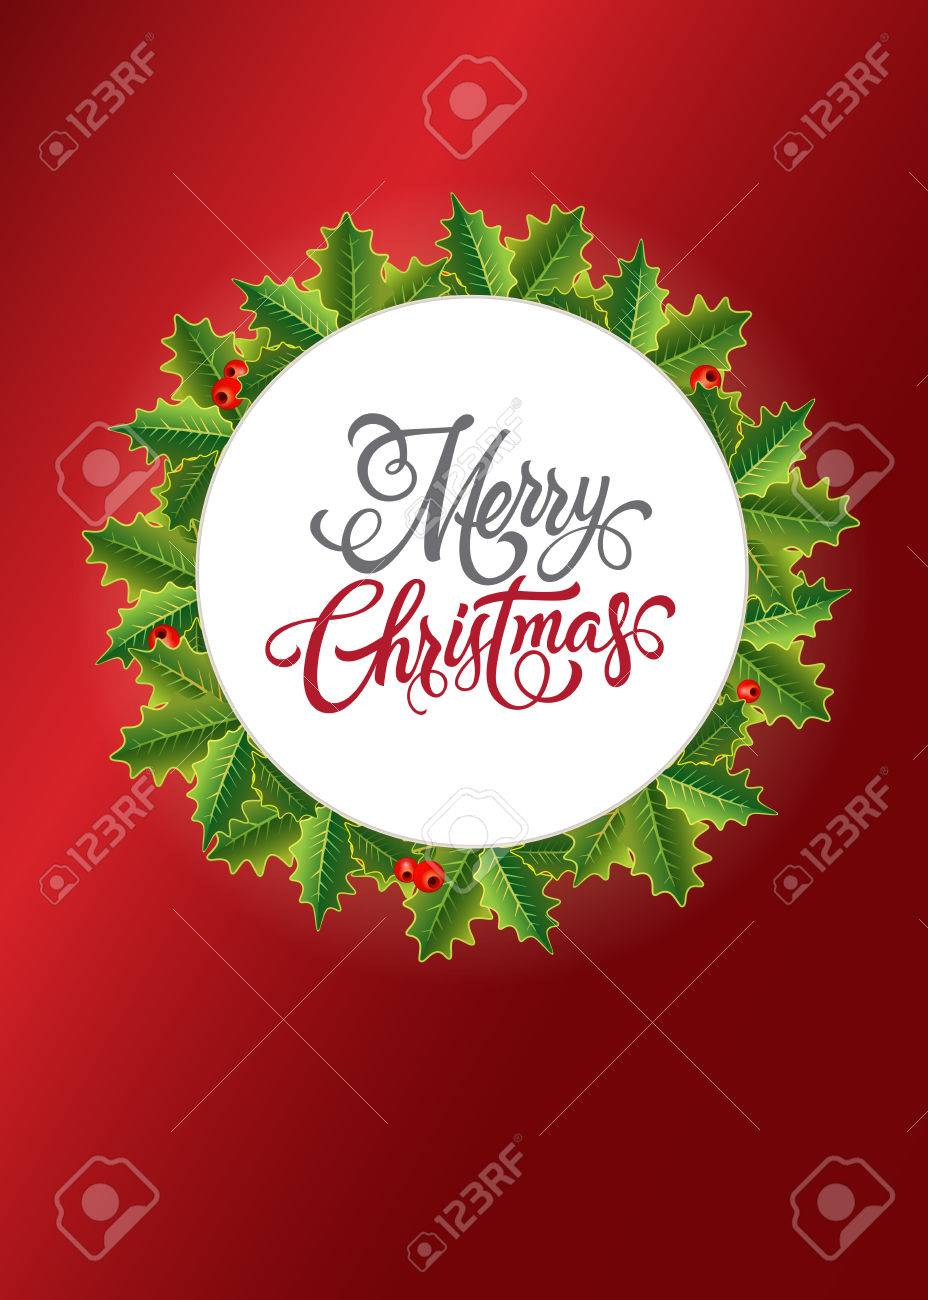 Merry Christmas Lettering. Christmas Greeting Card With Mistletoe ...